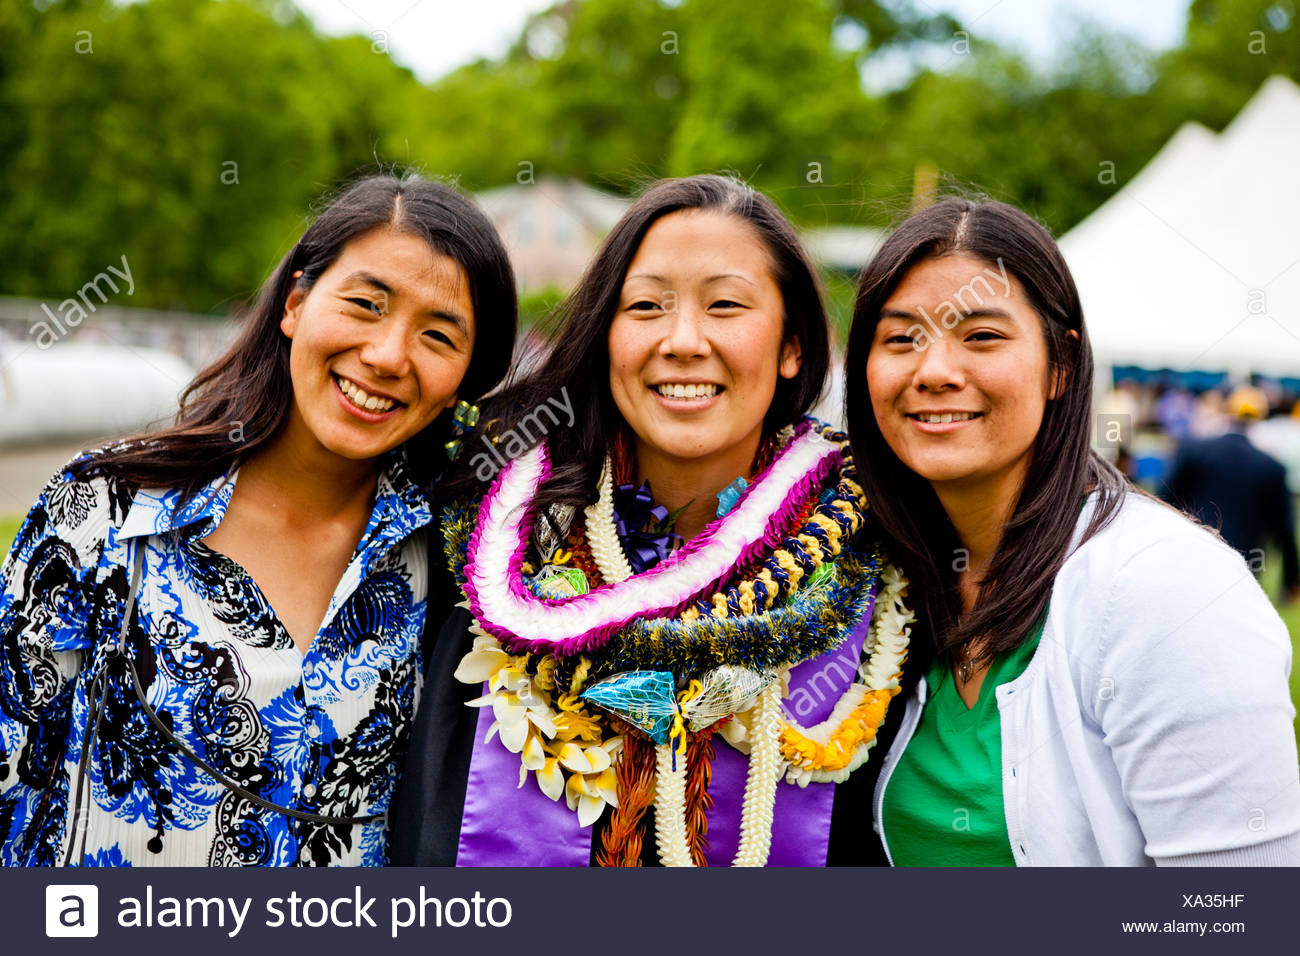 Sisters pose for the camera. - Stock Image